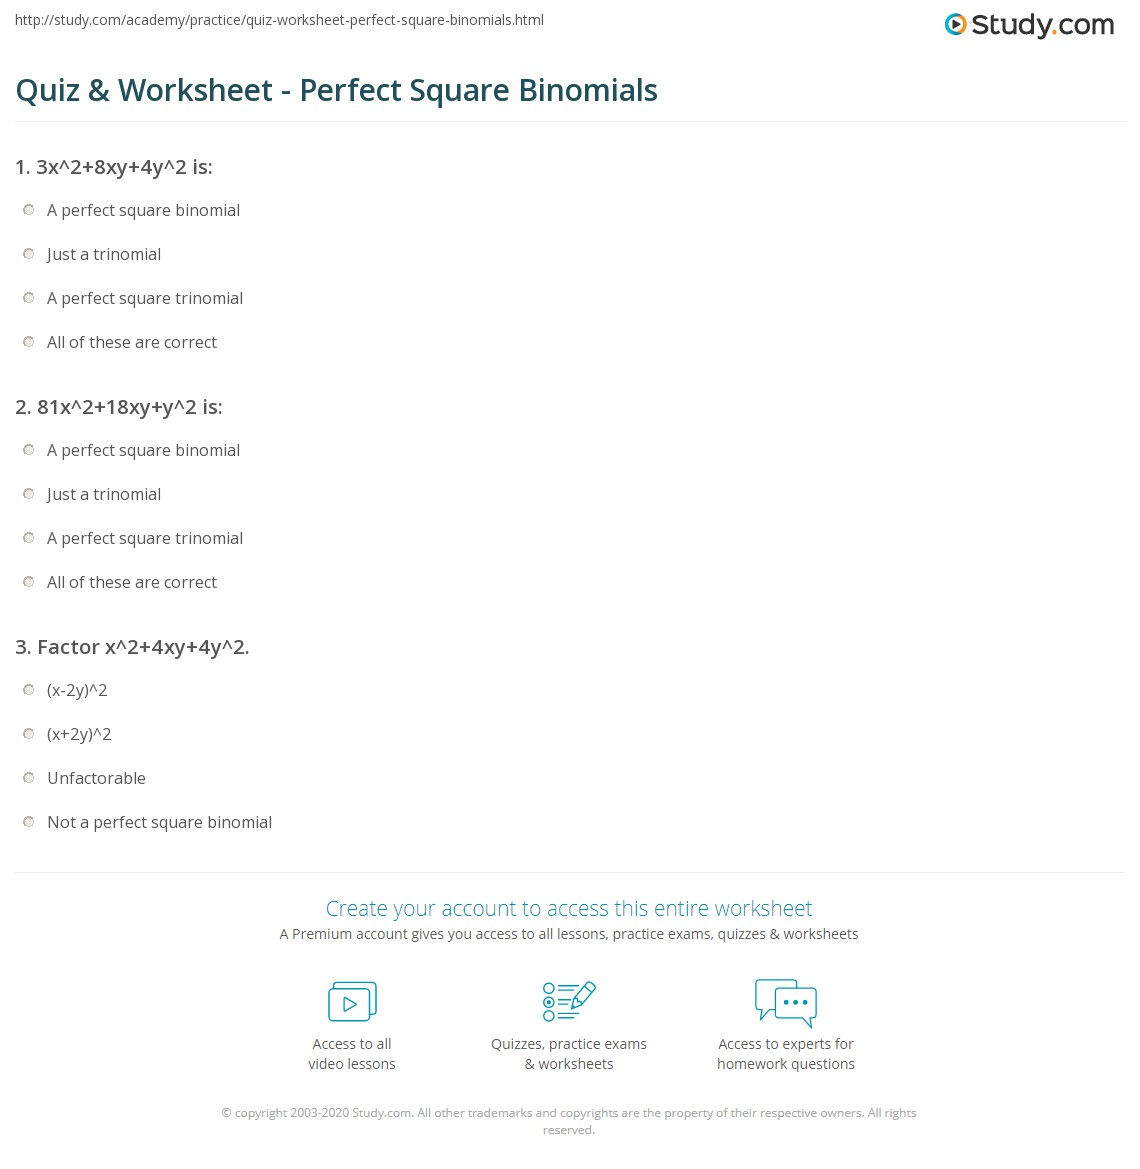 Workbooks perfect square worksheets 8th grade : Quiz & Worksheet - Perfect Square Binomials | Study.com